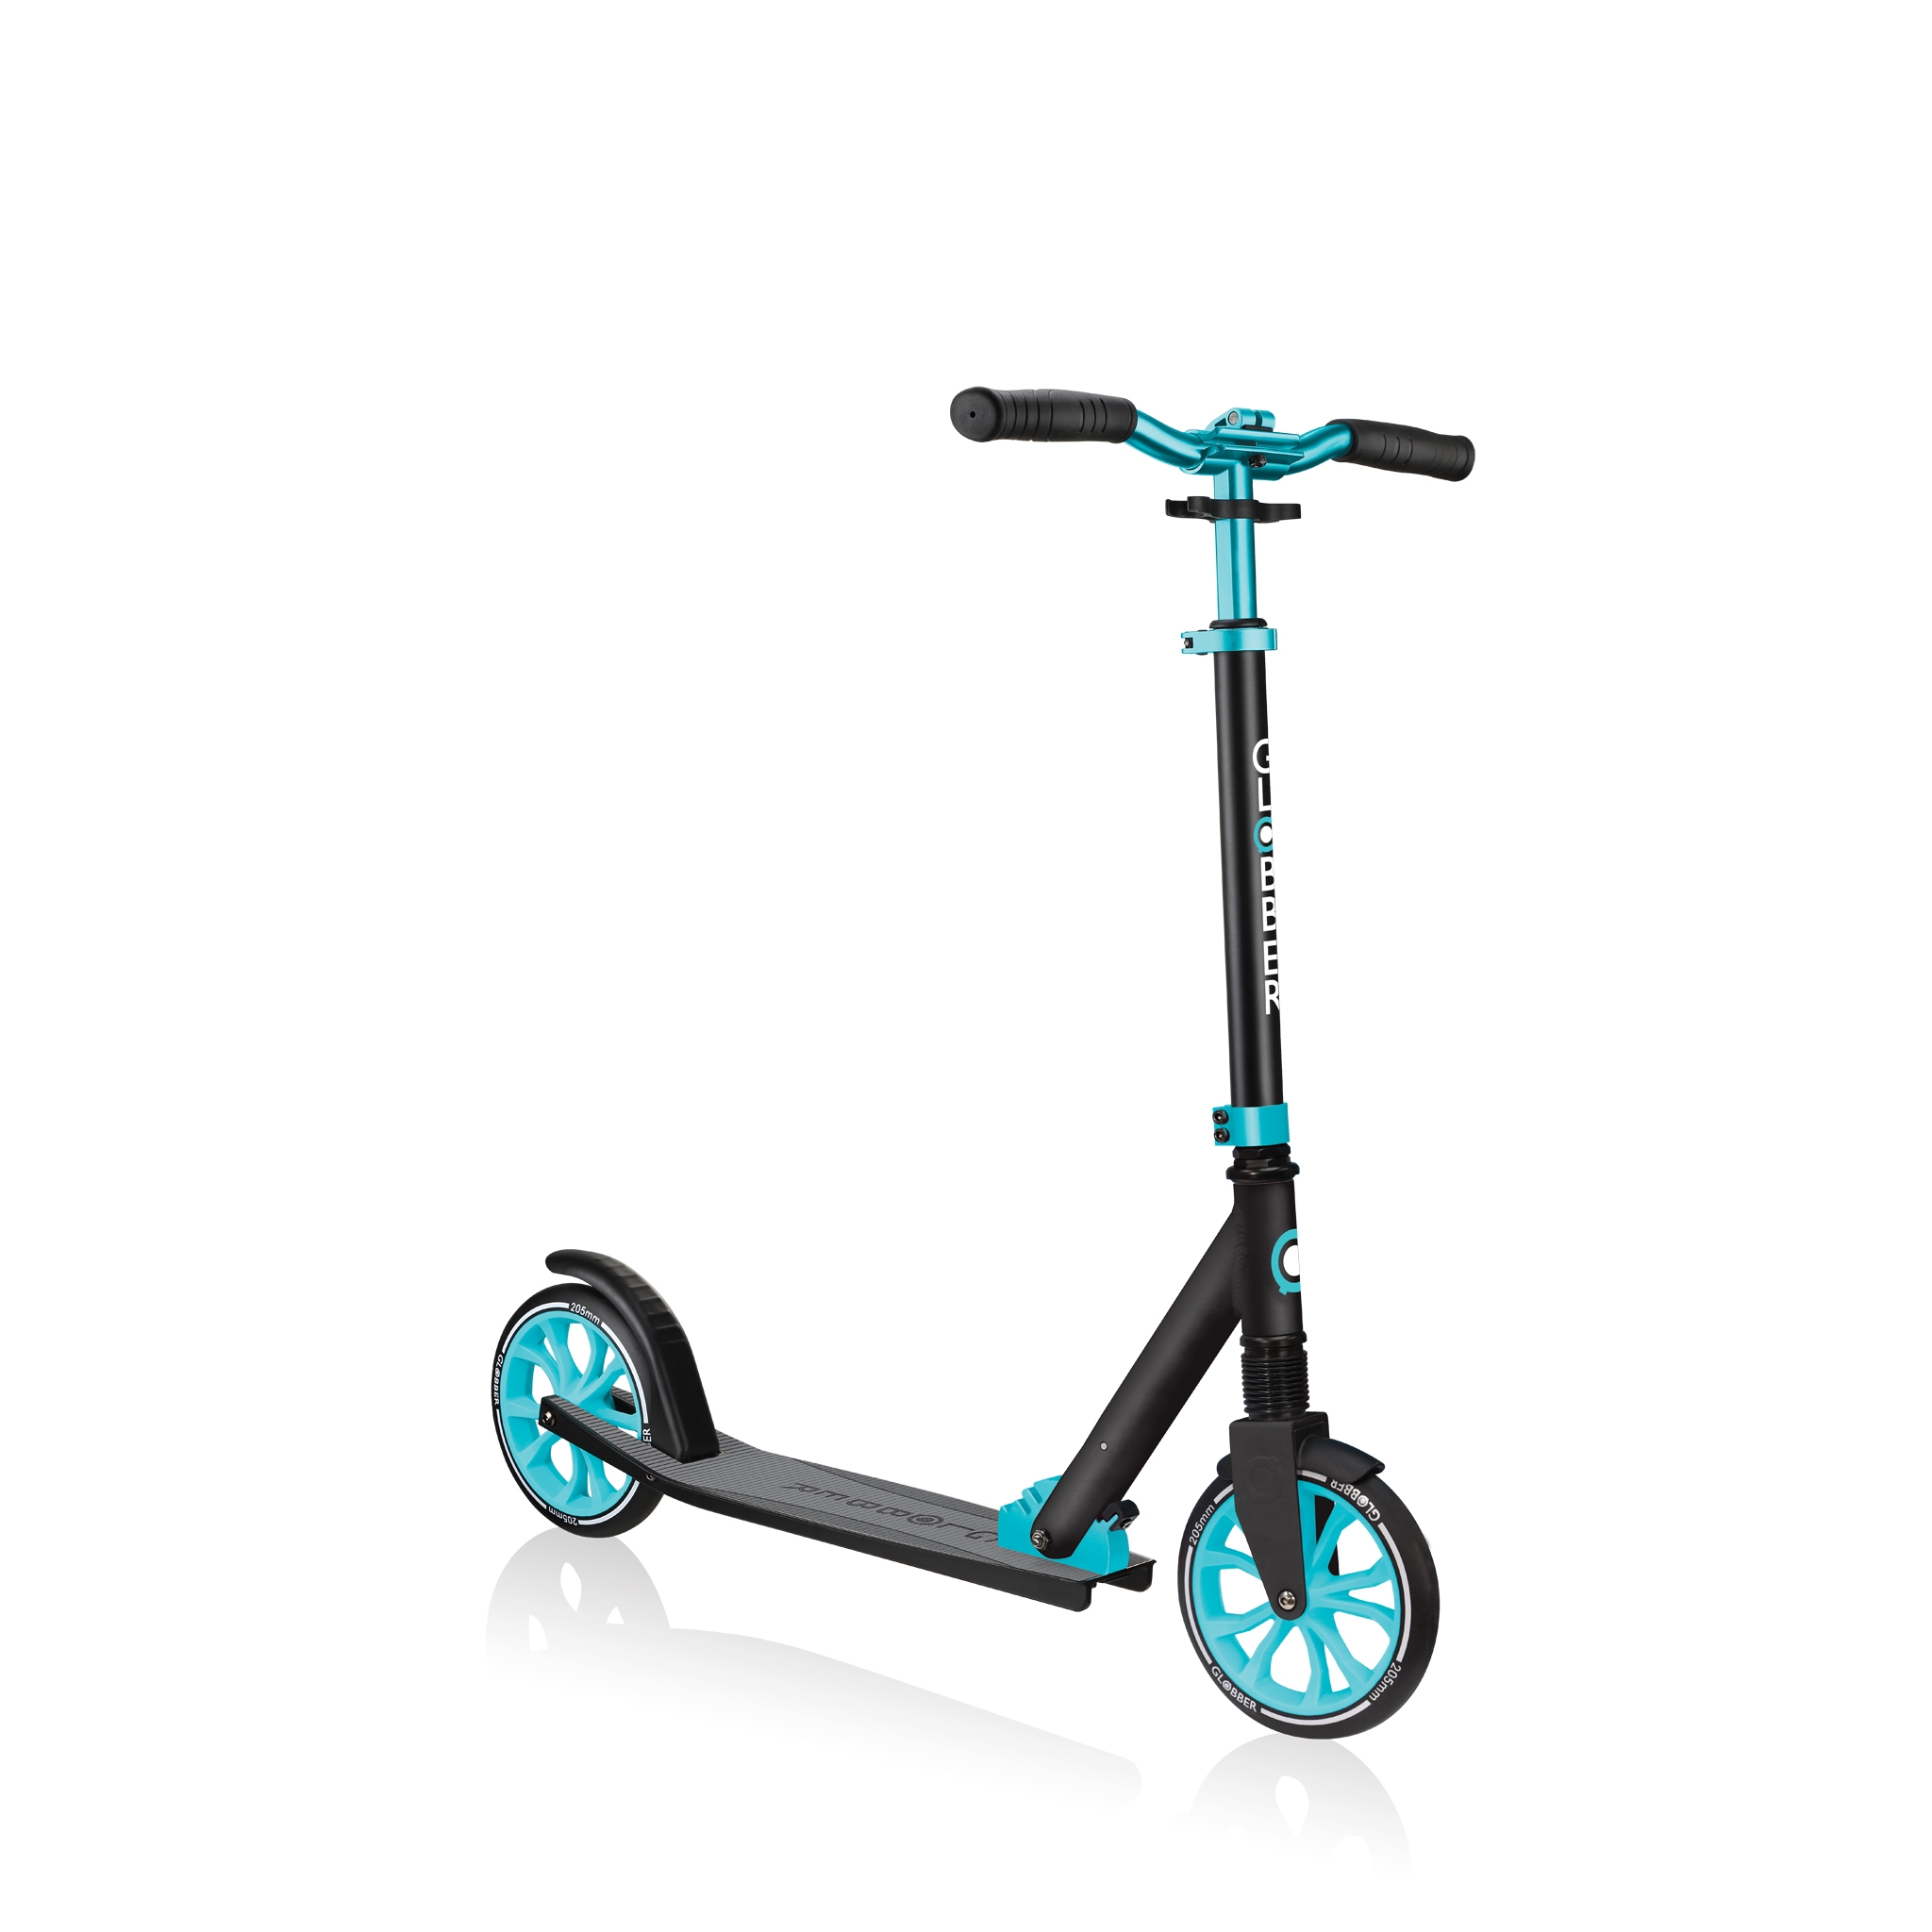 Globber-NL-205-big-wheel-scooter-for-kids-aged-8-and-above 0